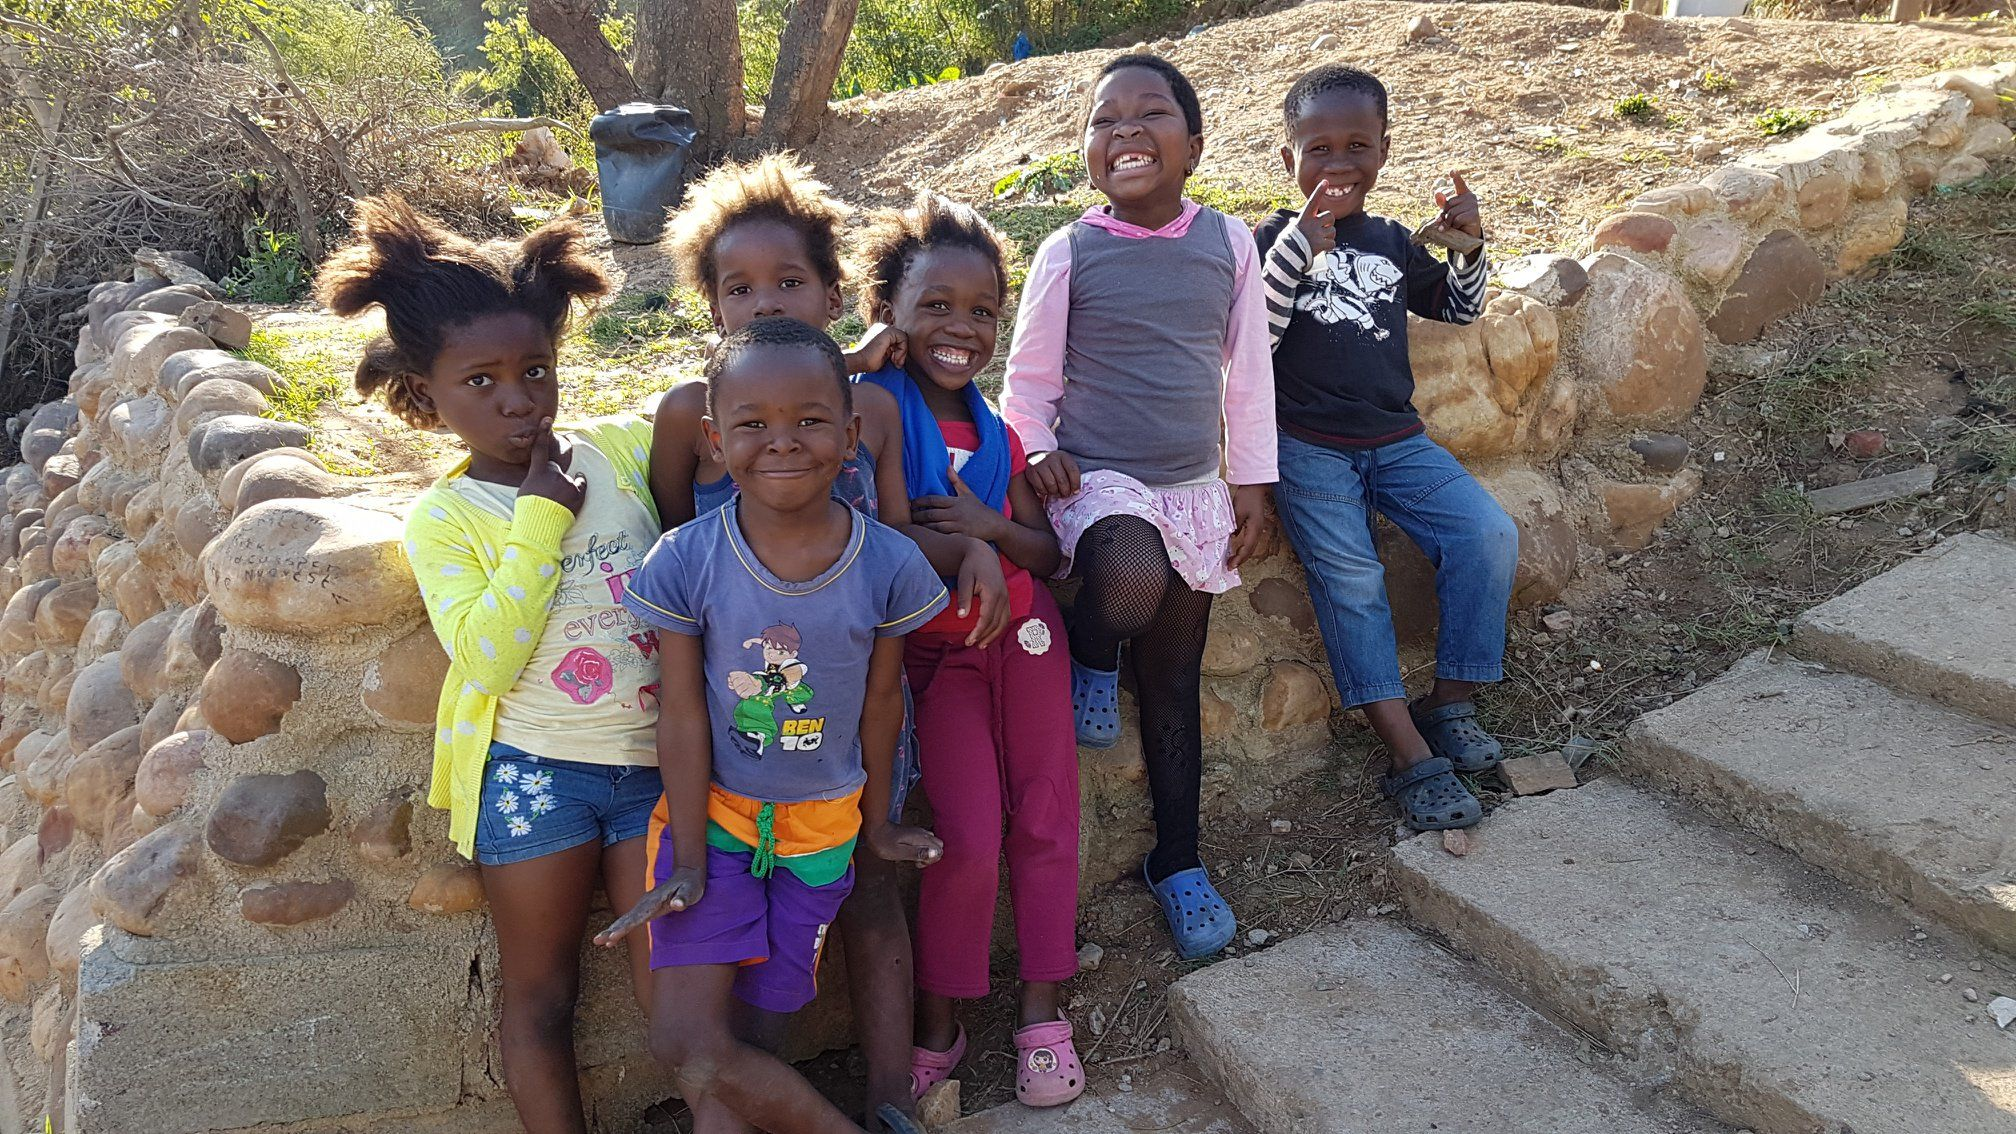 We mentor hundreds of kids in South Africa facing poverty & disease and have seen firsthand how love changes futures.